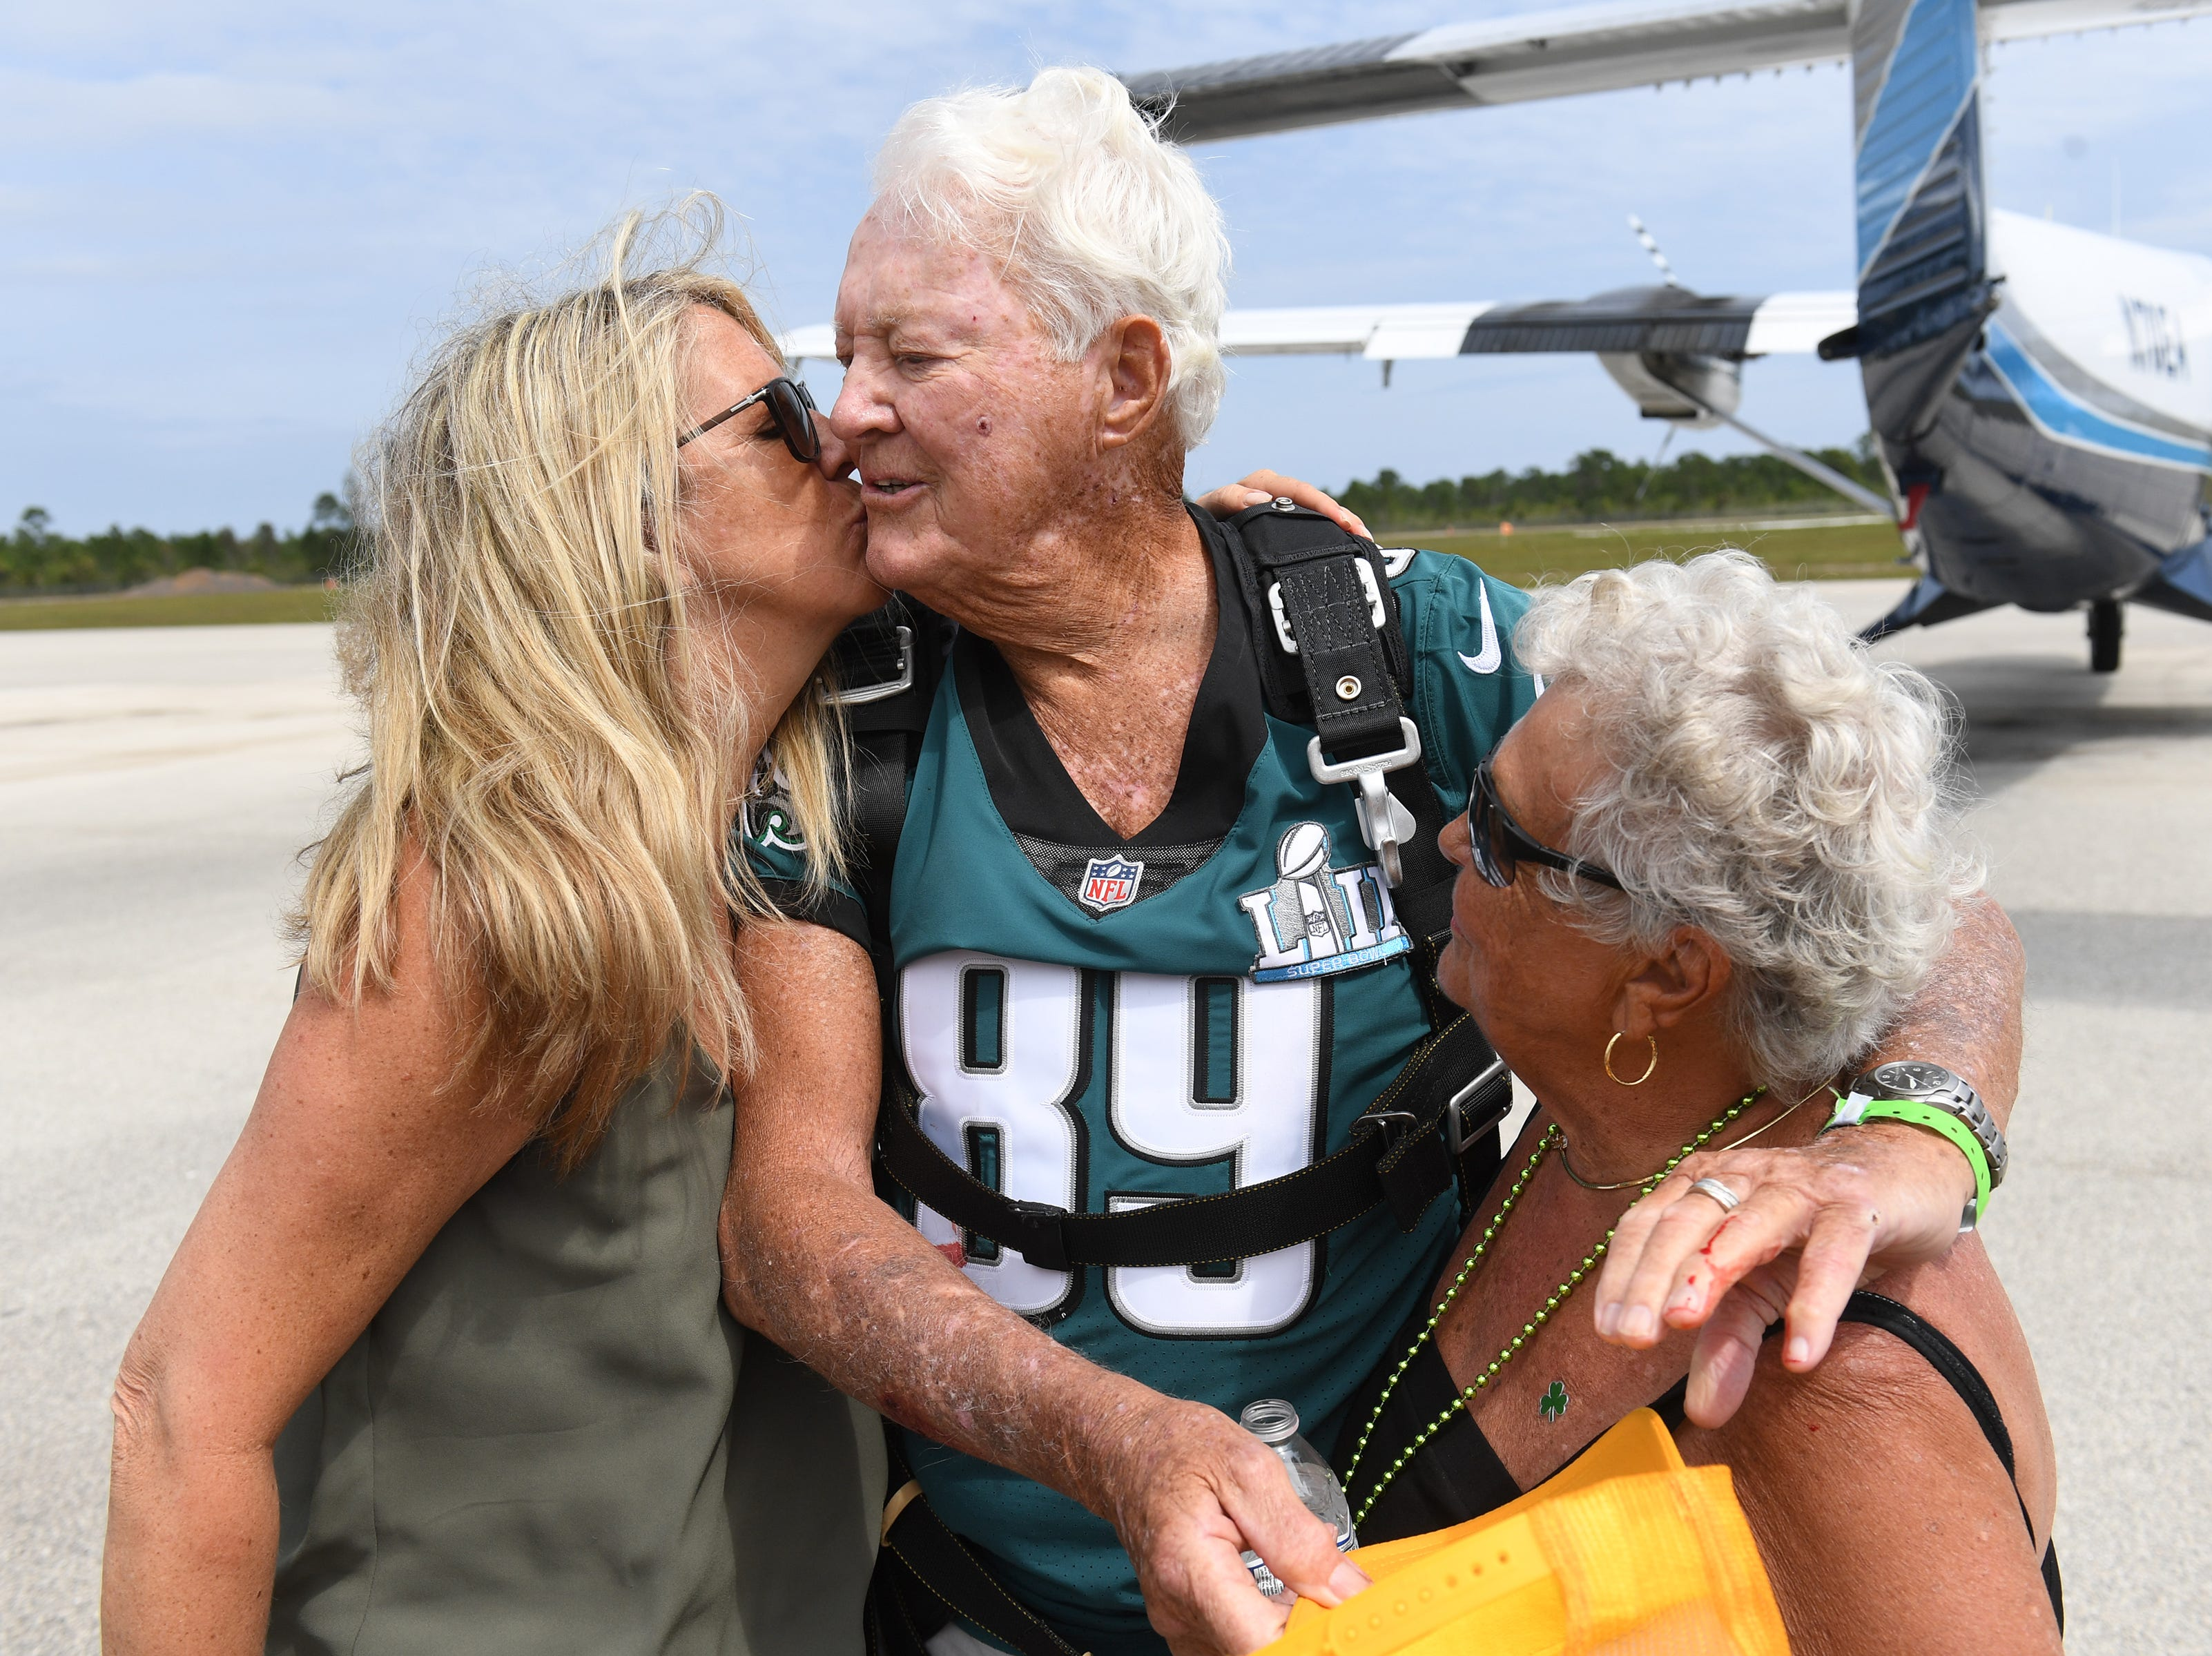 Celebrating his 90th birthday, Jack Grimner, a Port St. Lucie and St. Petersburg snowbird from Philadelphia, wears a number 89 Philadelphia Eagles green jersey while taking a tandem skydive with family members at Skydive Sebastian on Saint Patrick's Day Sunday, March 17, 2019, in Sebastian.